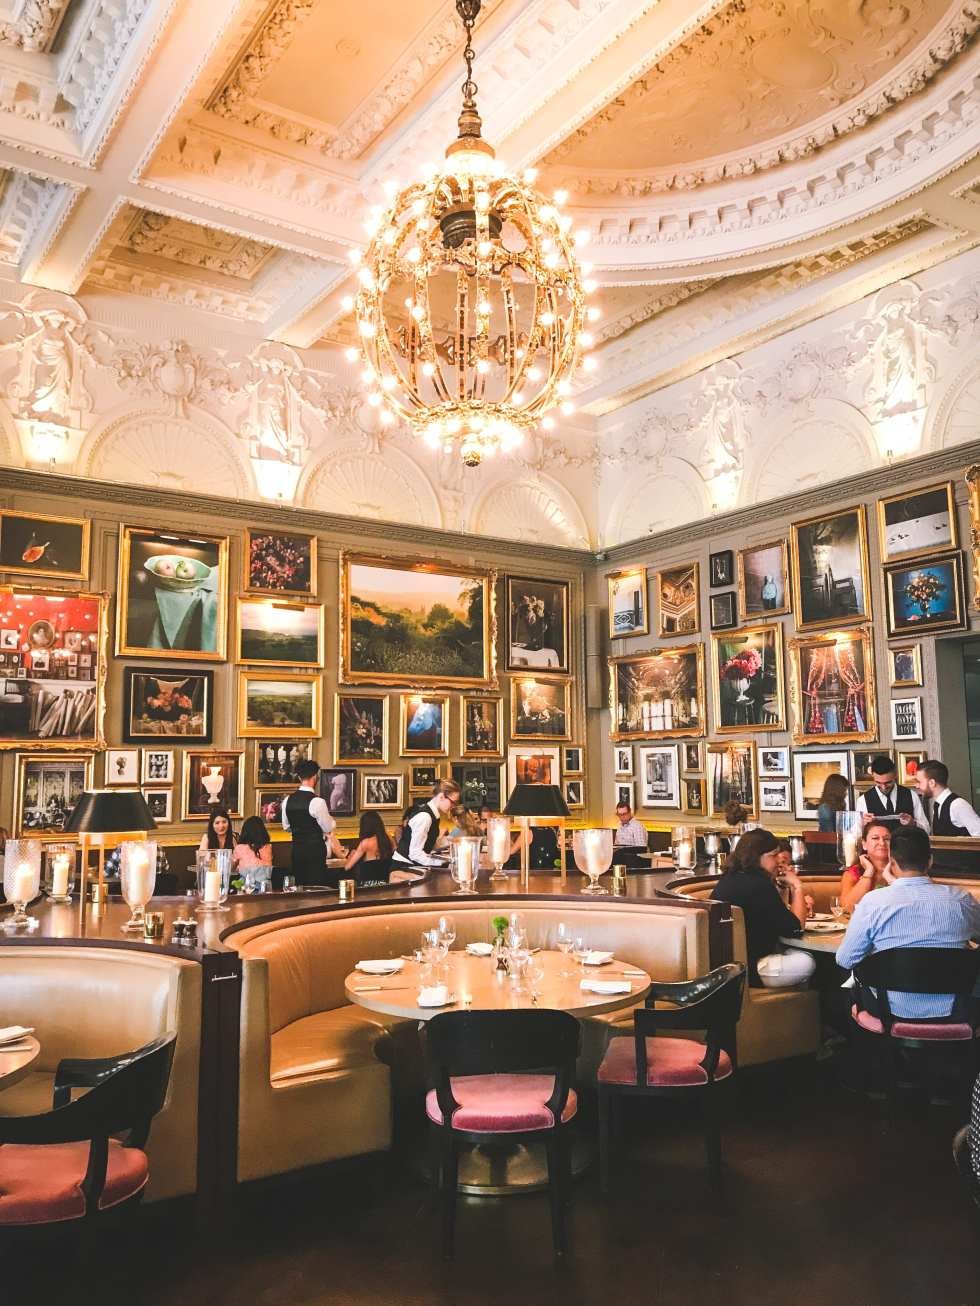 Berners Tavern | THE DESIGN SOUK | www.thedesignsouk.com